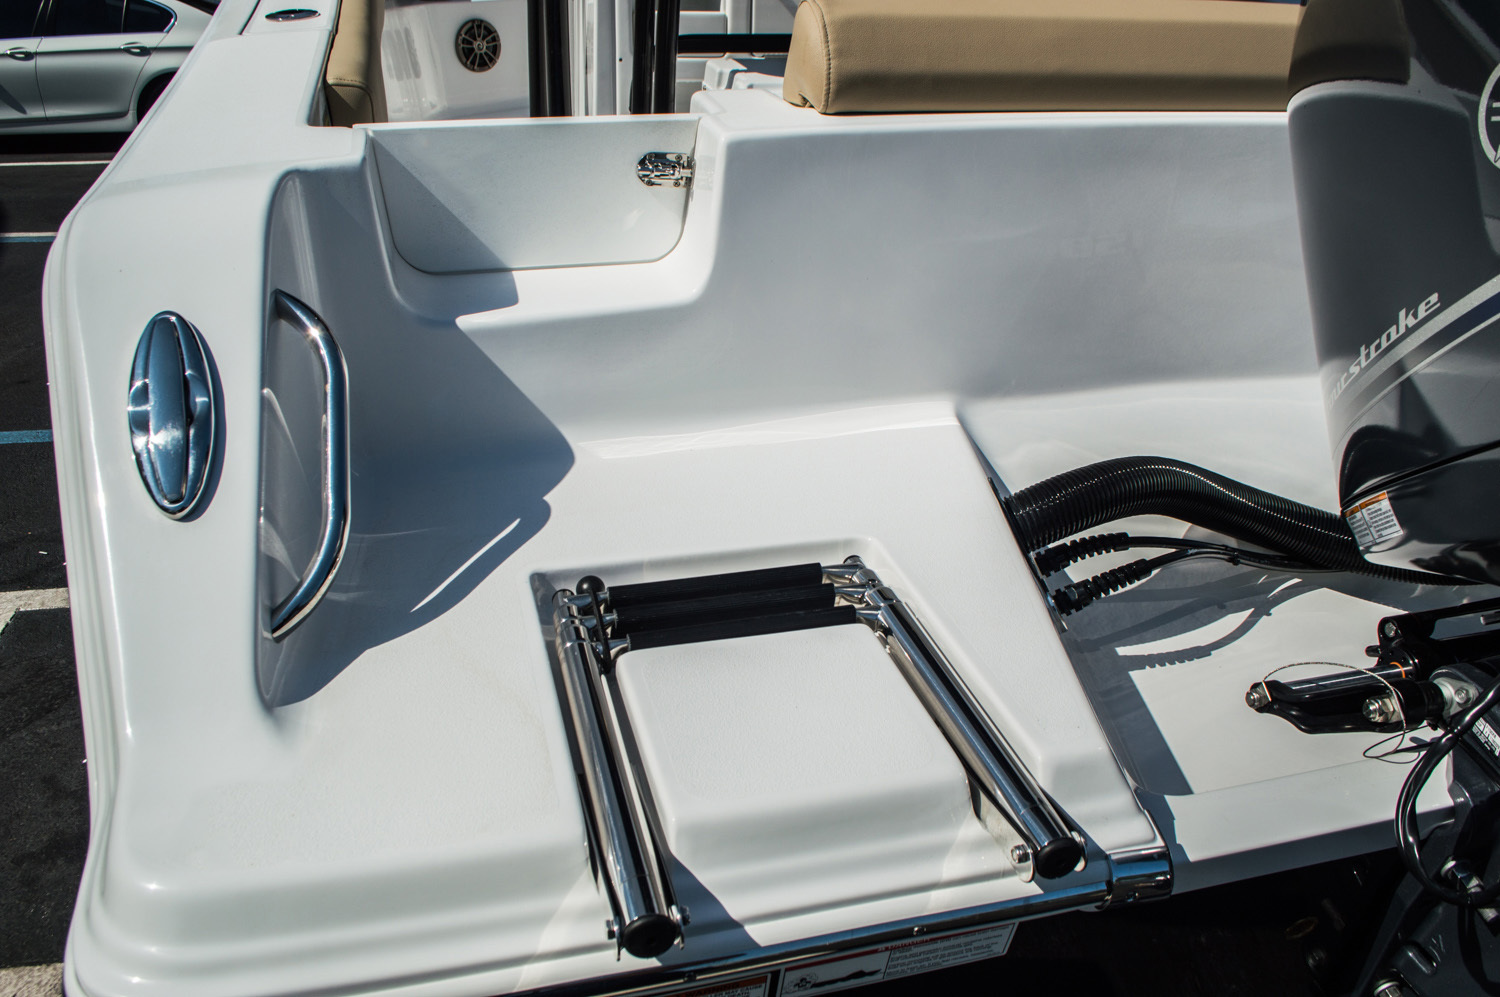 Thumbnail 8 for New 2016 Sportsman Open 212 Center Console boat for sale in West Palm Beach, FL